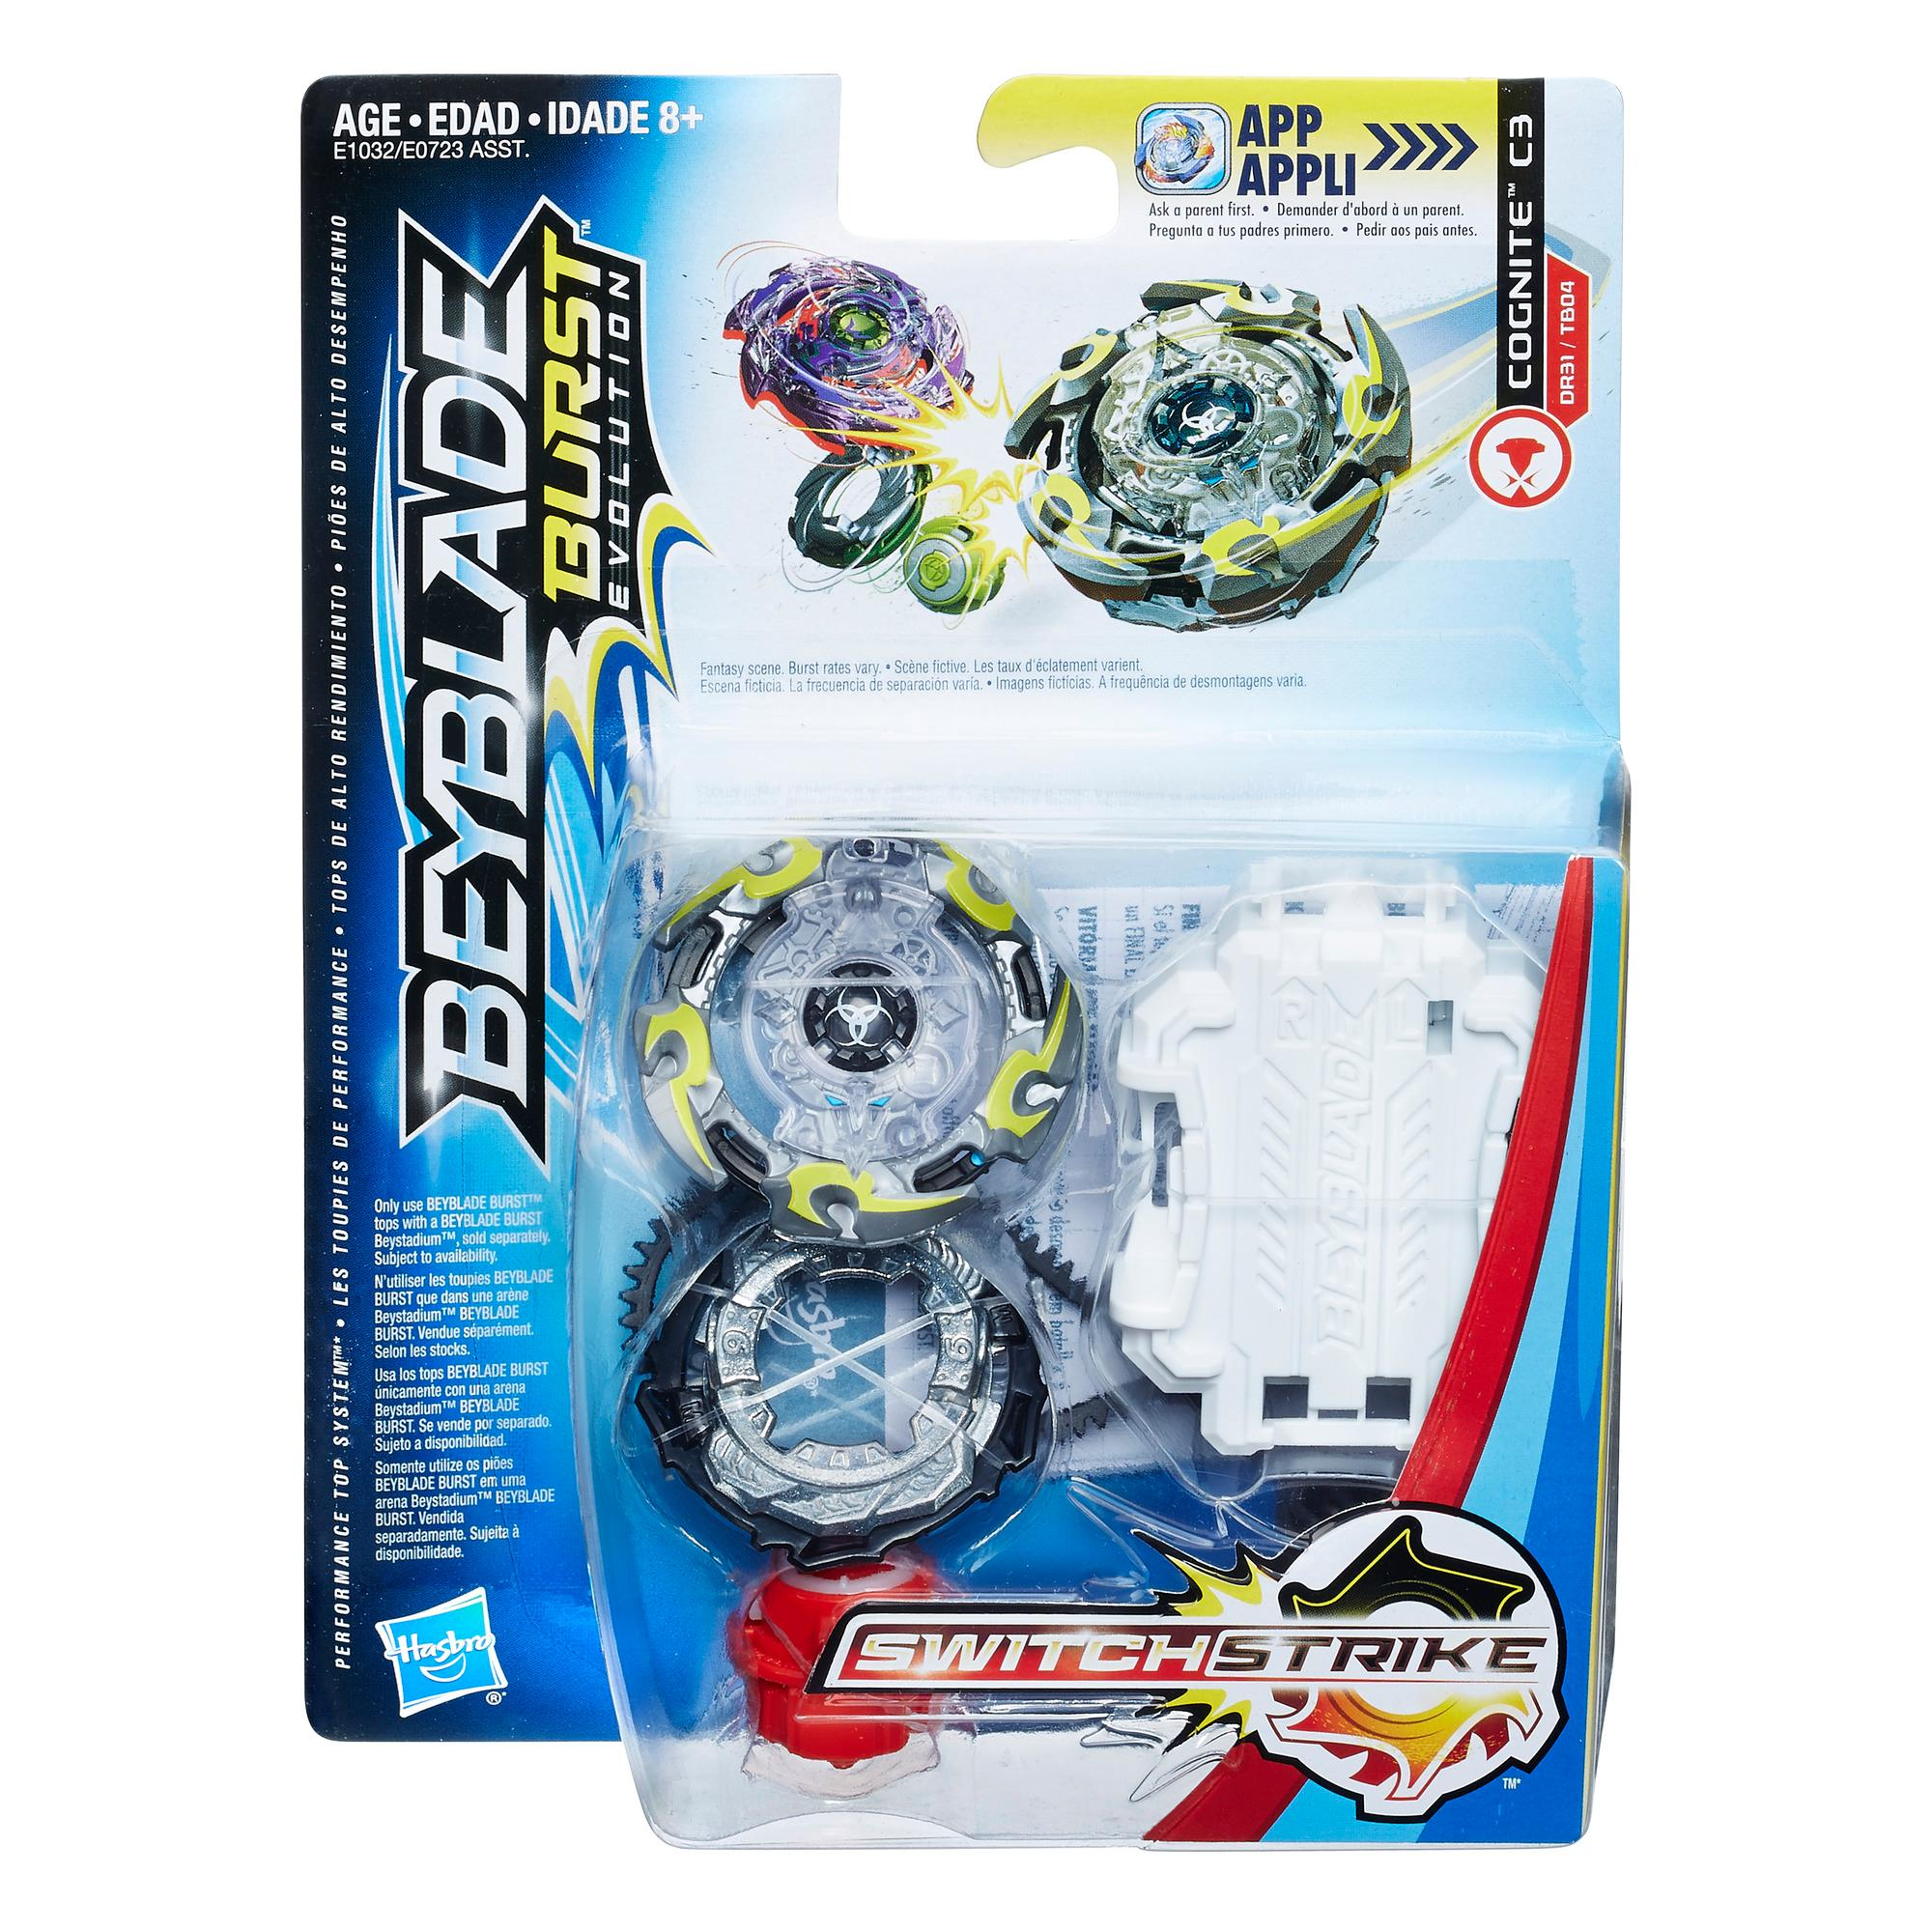 Beyblade Burst Evolution - Kit de départ SwitchStrike - Cognite C3